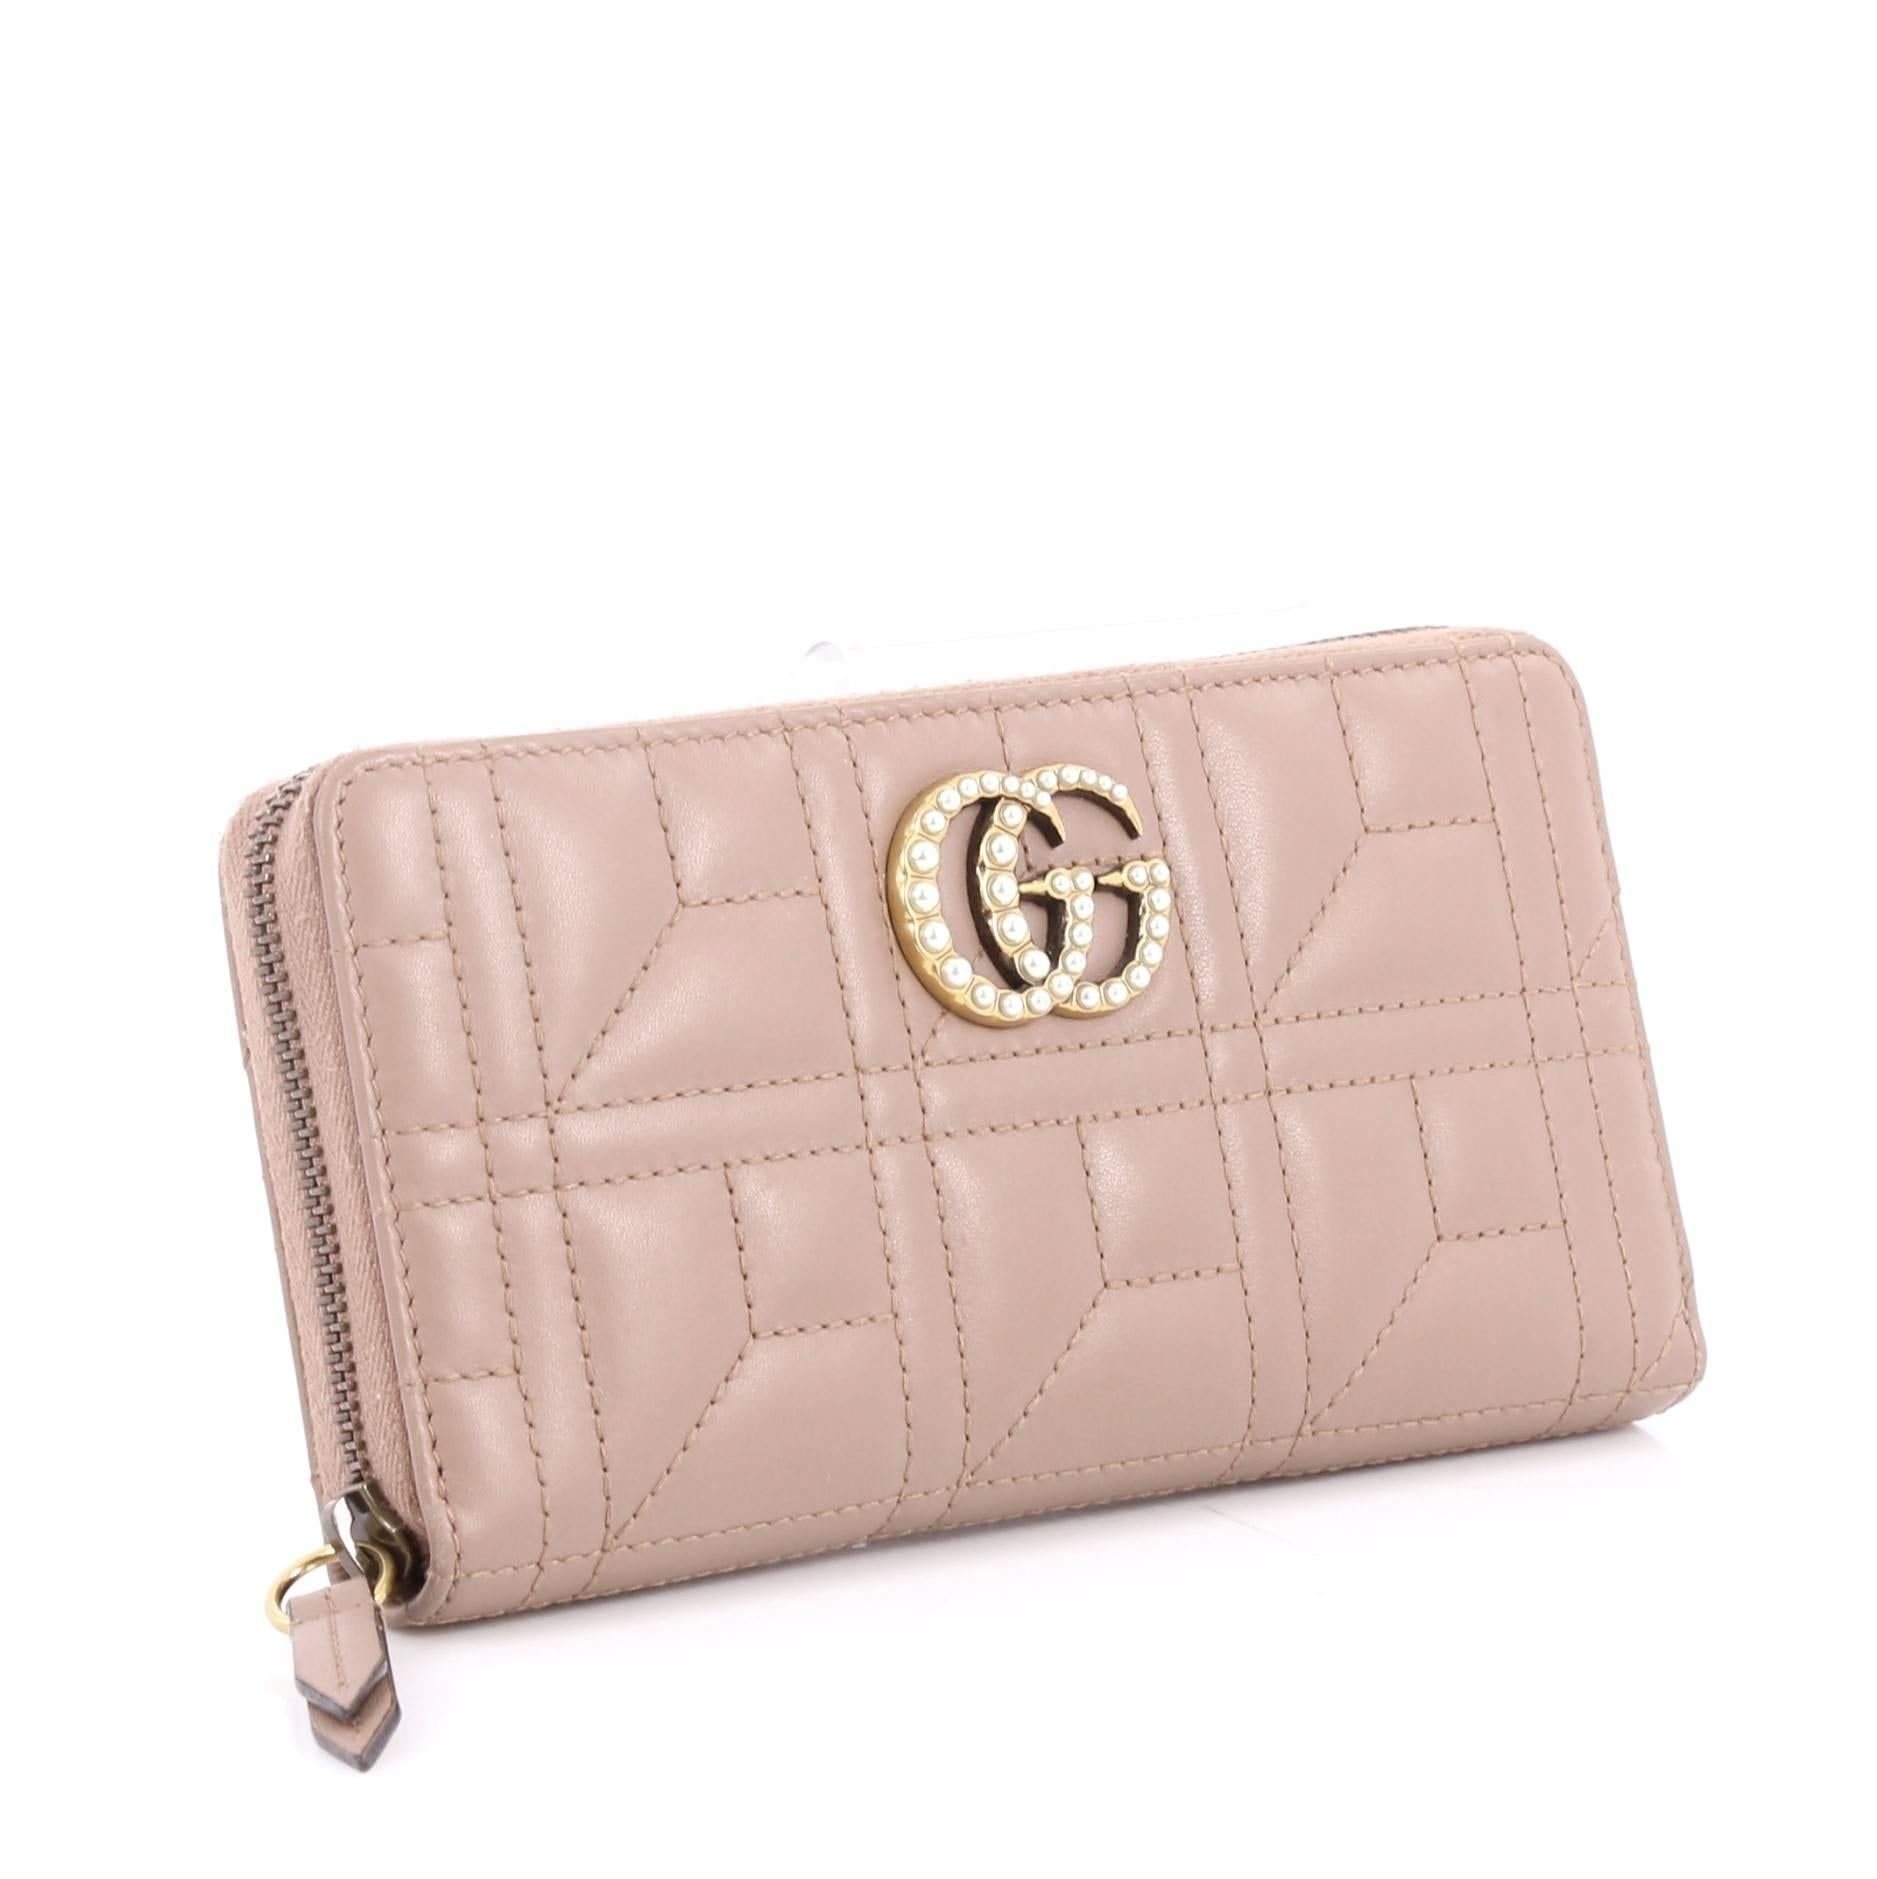 ca9b063846c Gucci Pearly GG Marmont Zip Around Wallet Matelasse Leather at 1stdibs